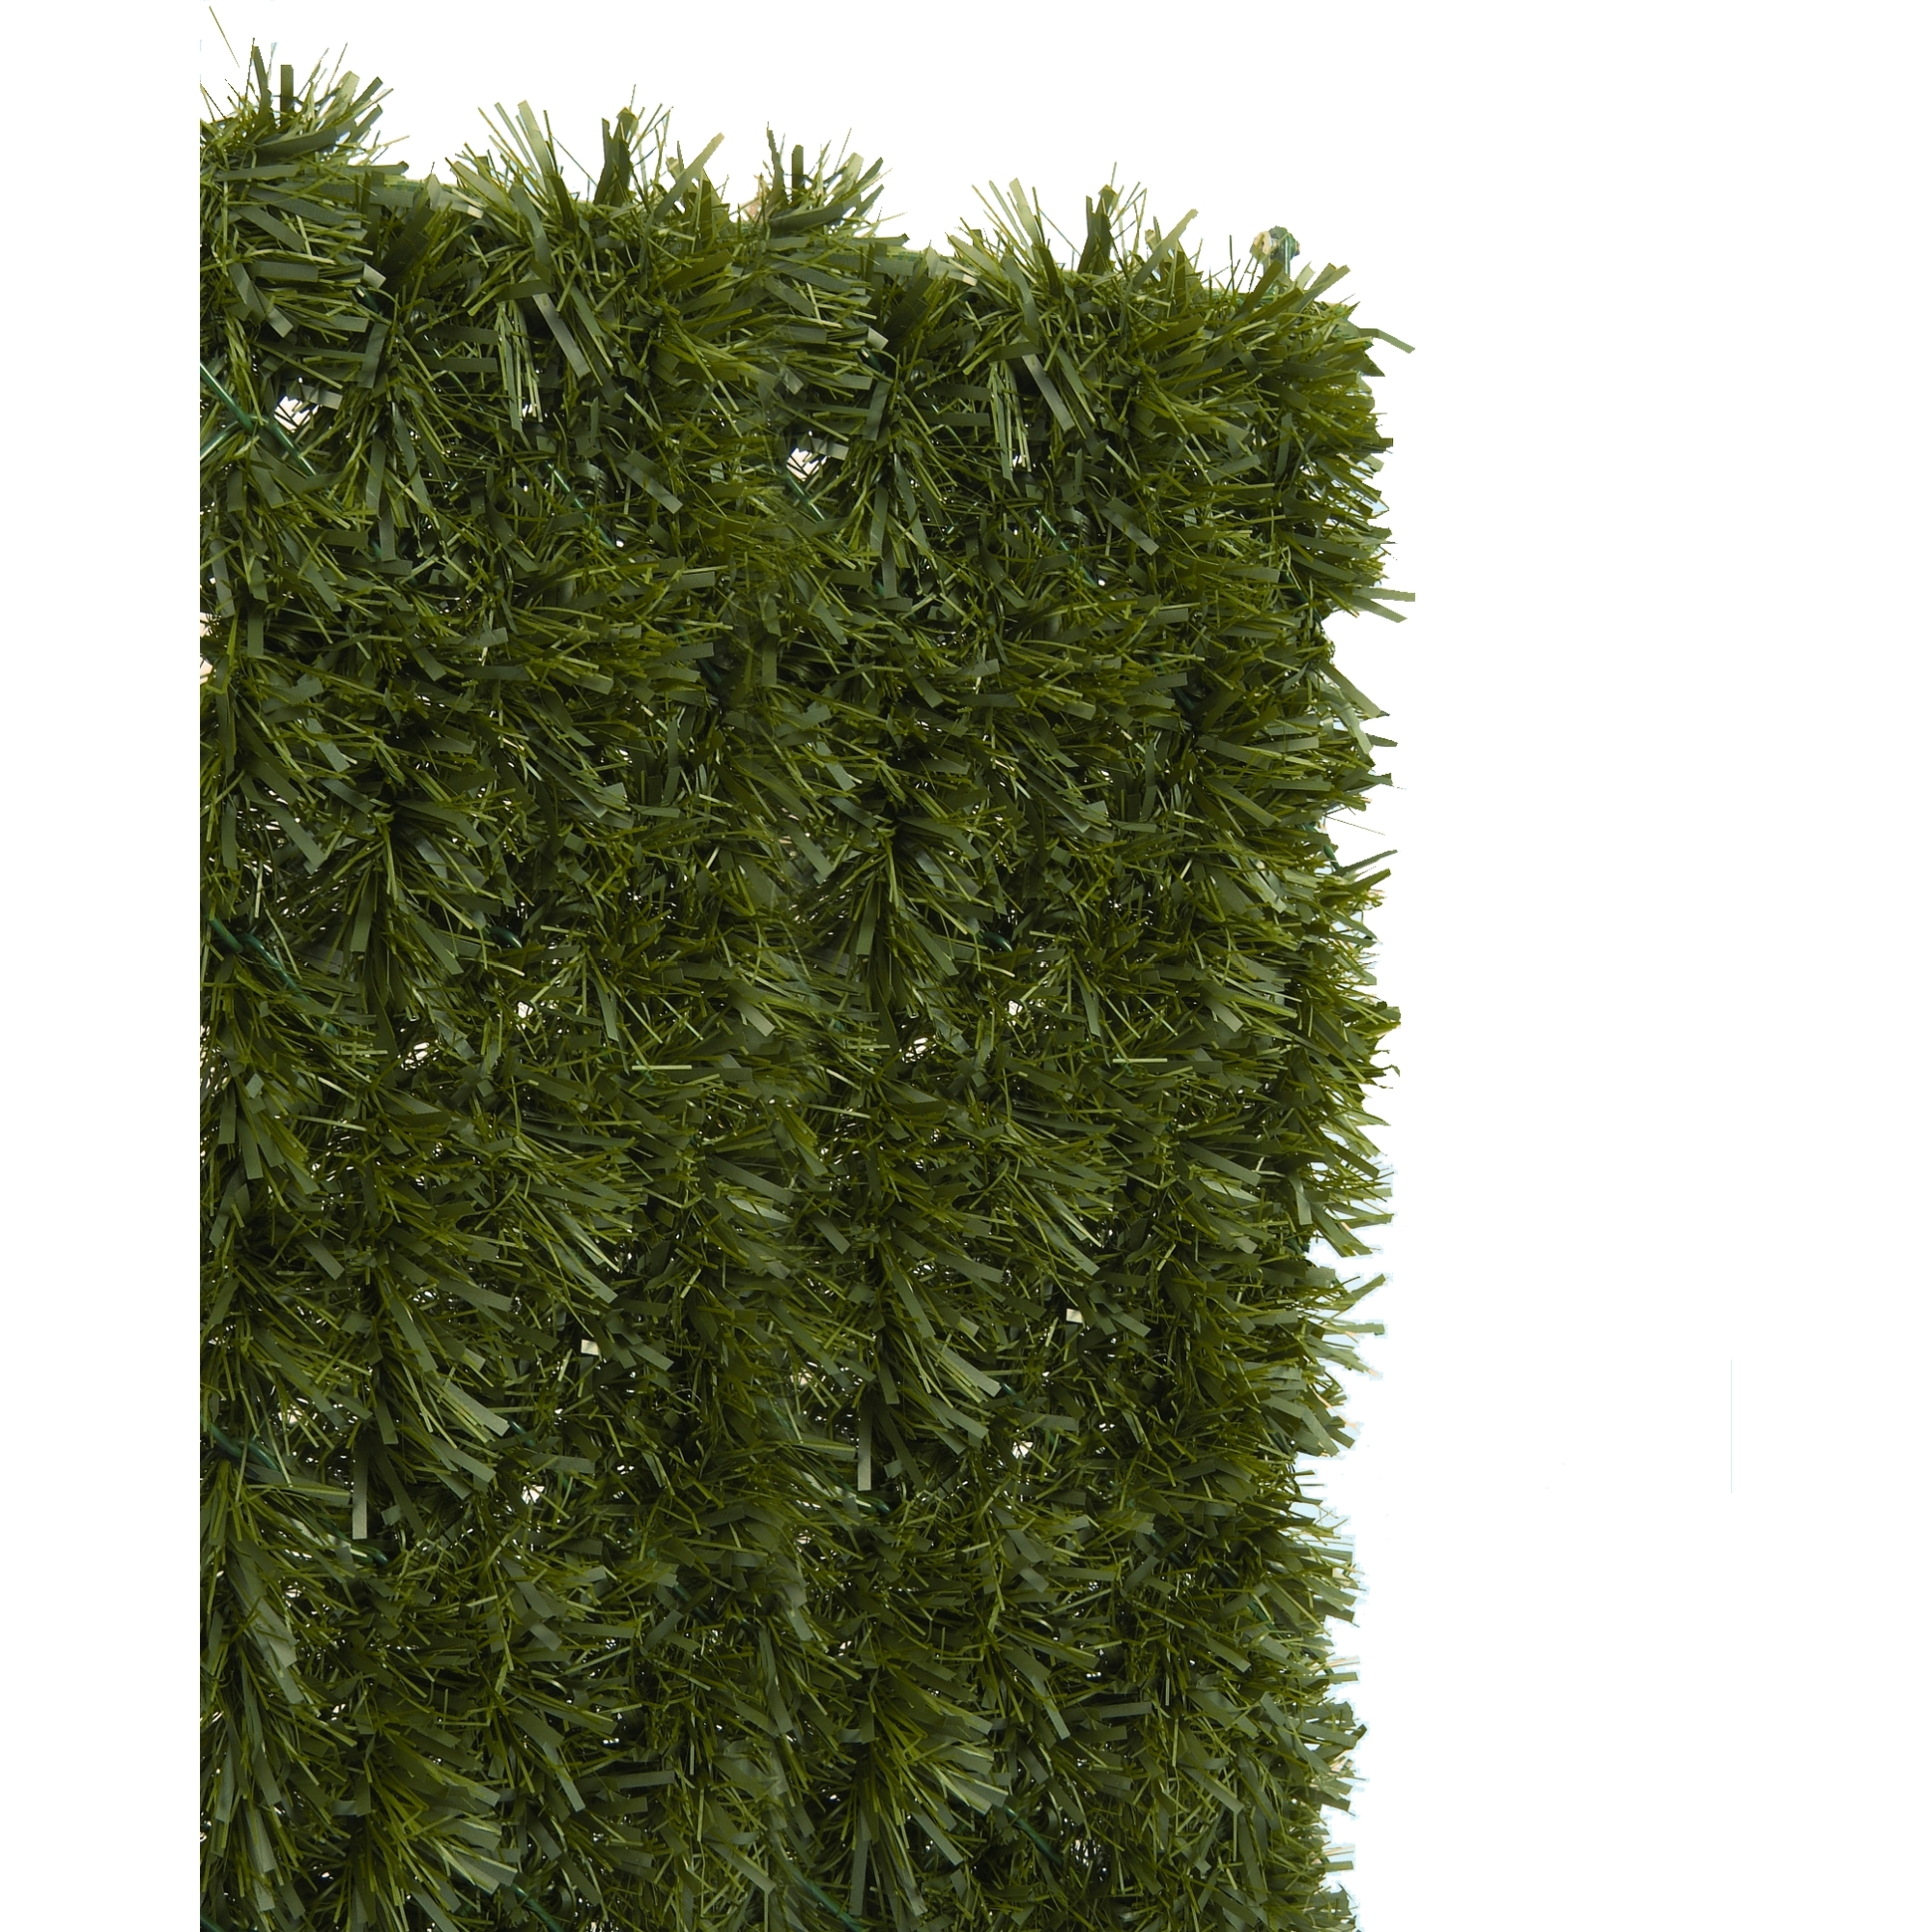 Haie artificielle super Canada 150x300 cm vert  Grillage ...